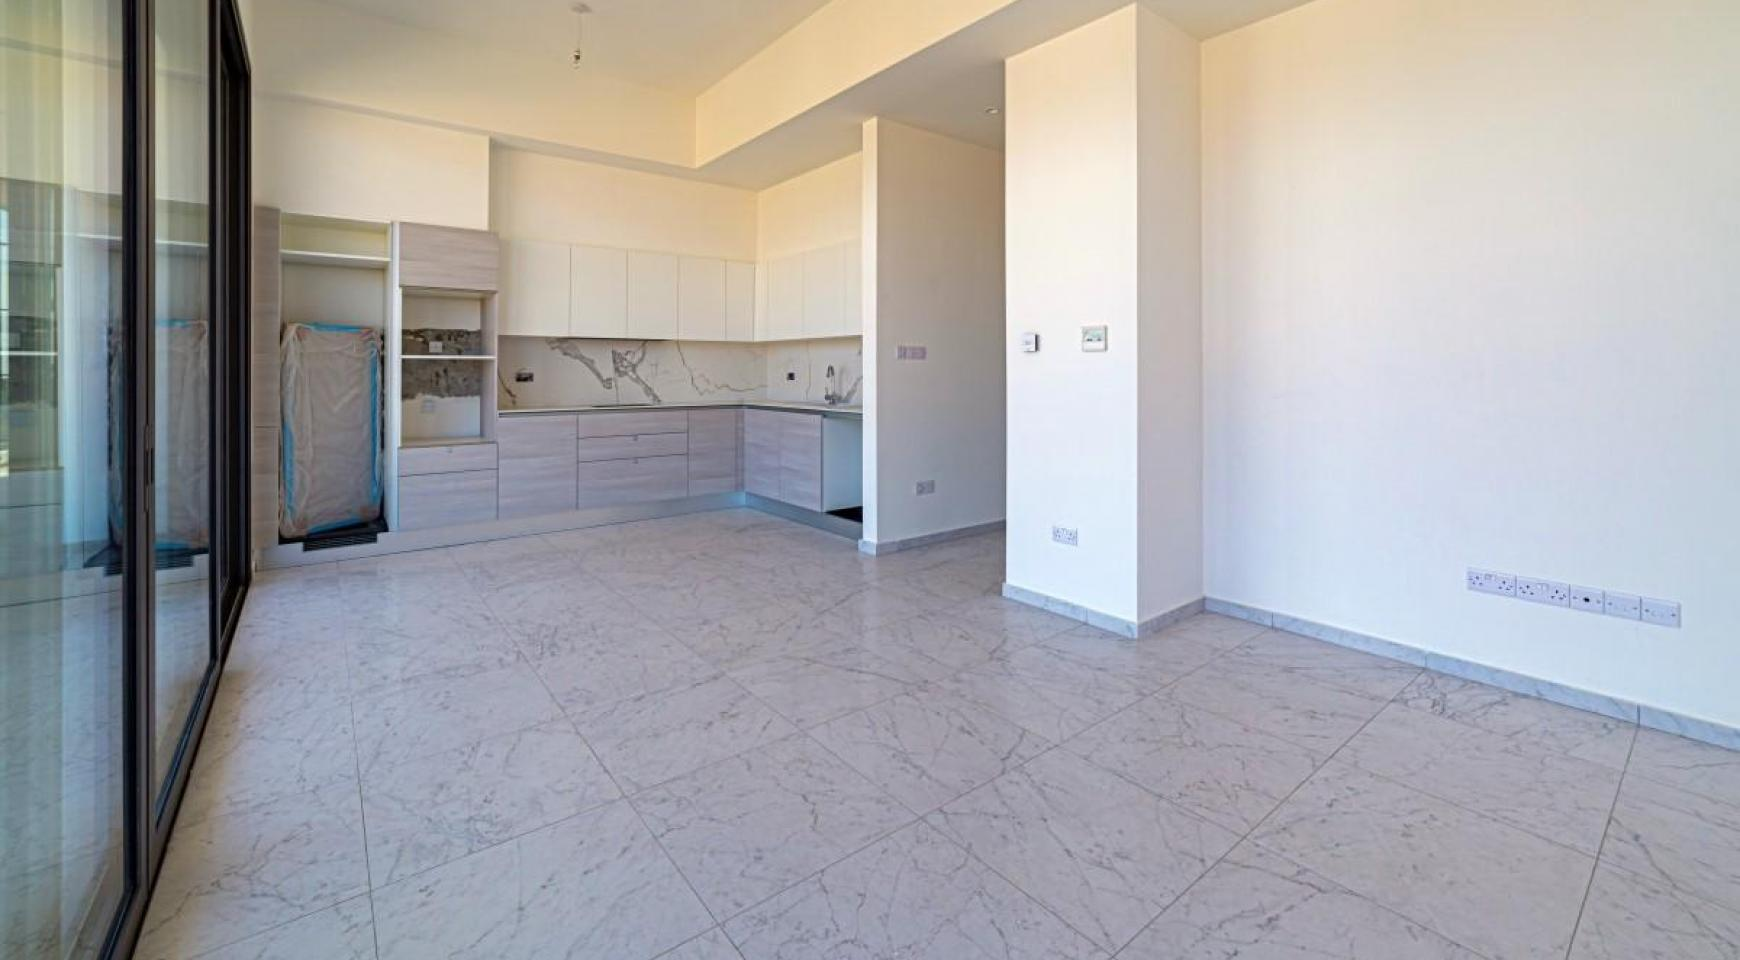 Urban City Residences, Block A. New Spacious 3 Bedroom Apartment 201 in the City Centre - 8